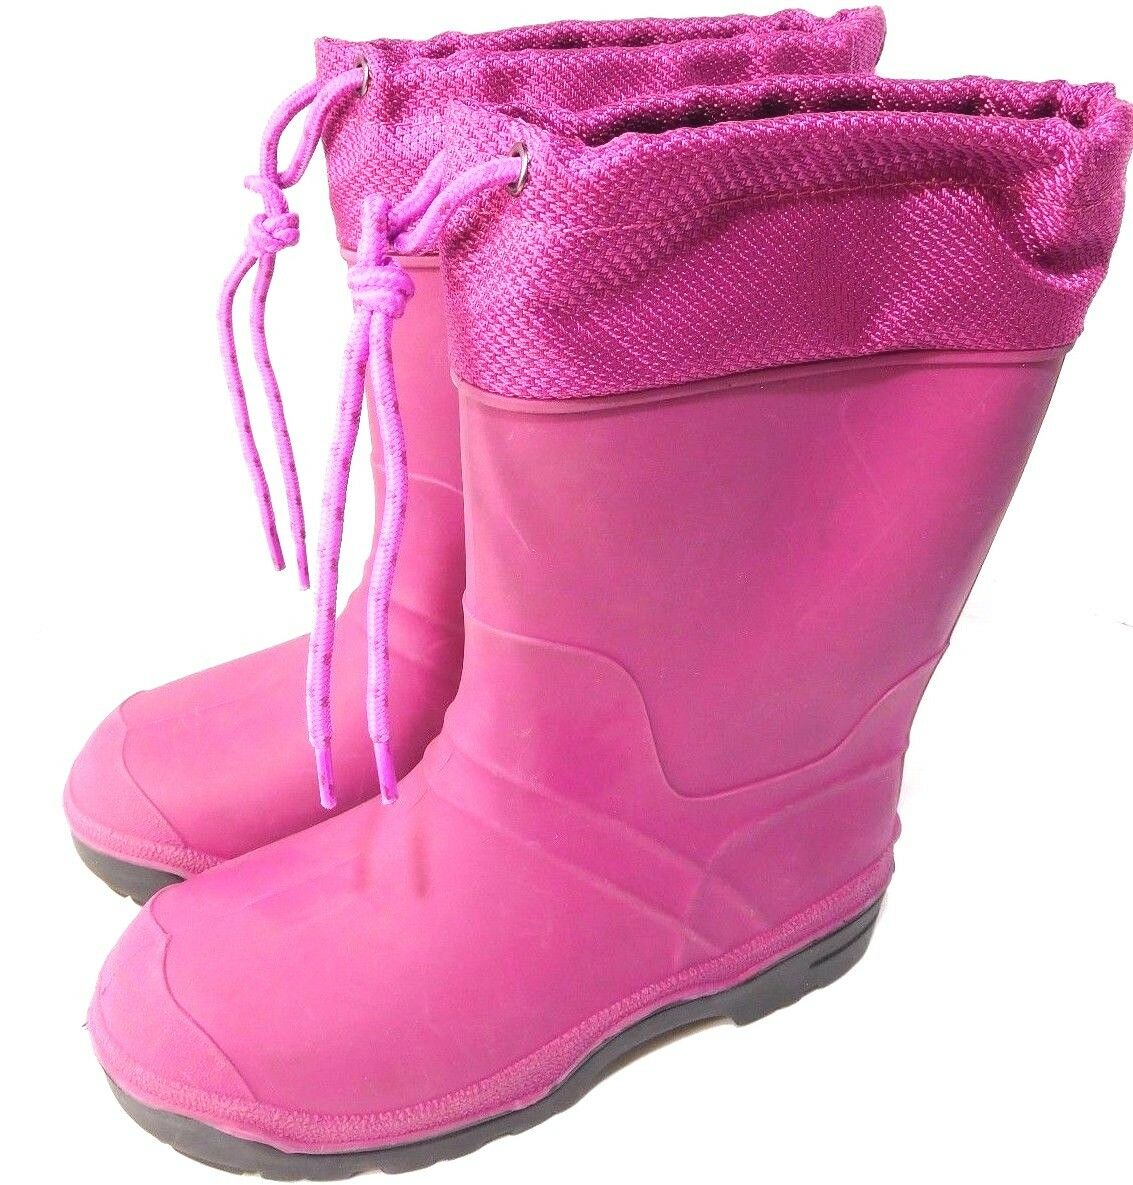 Kamik Girls' Snobuster 1 Ankle Winter Boots, Girl's Pink US